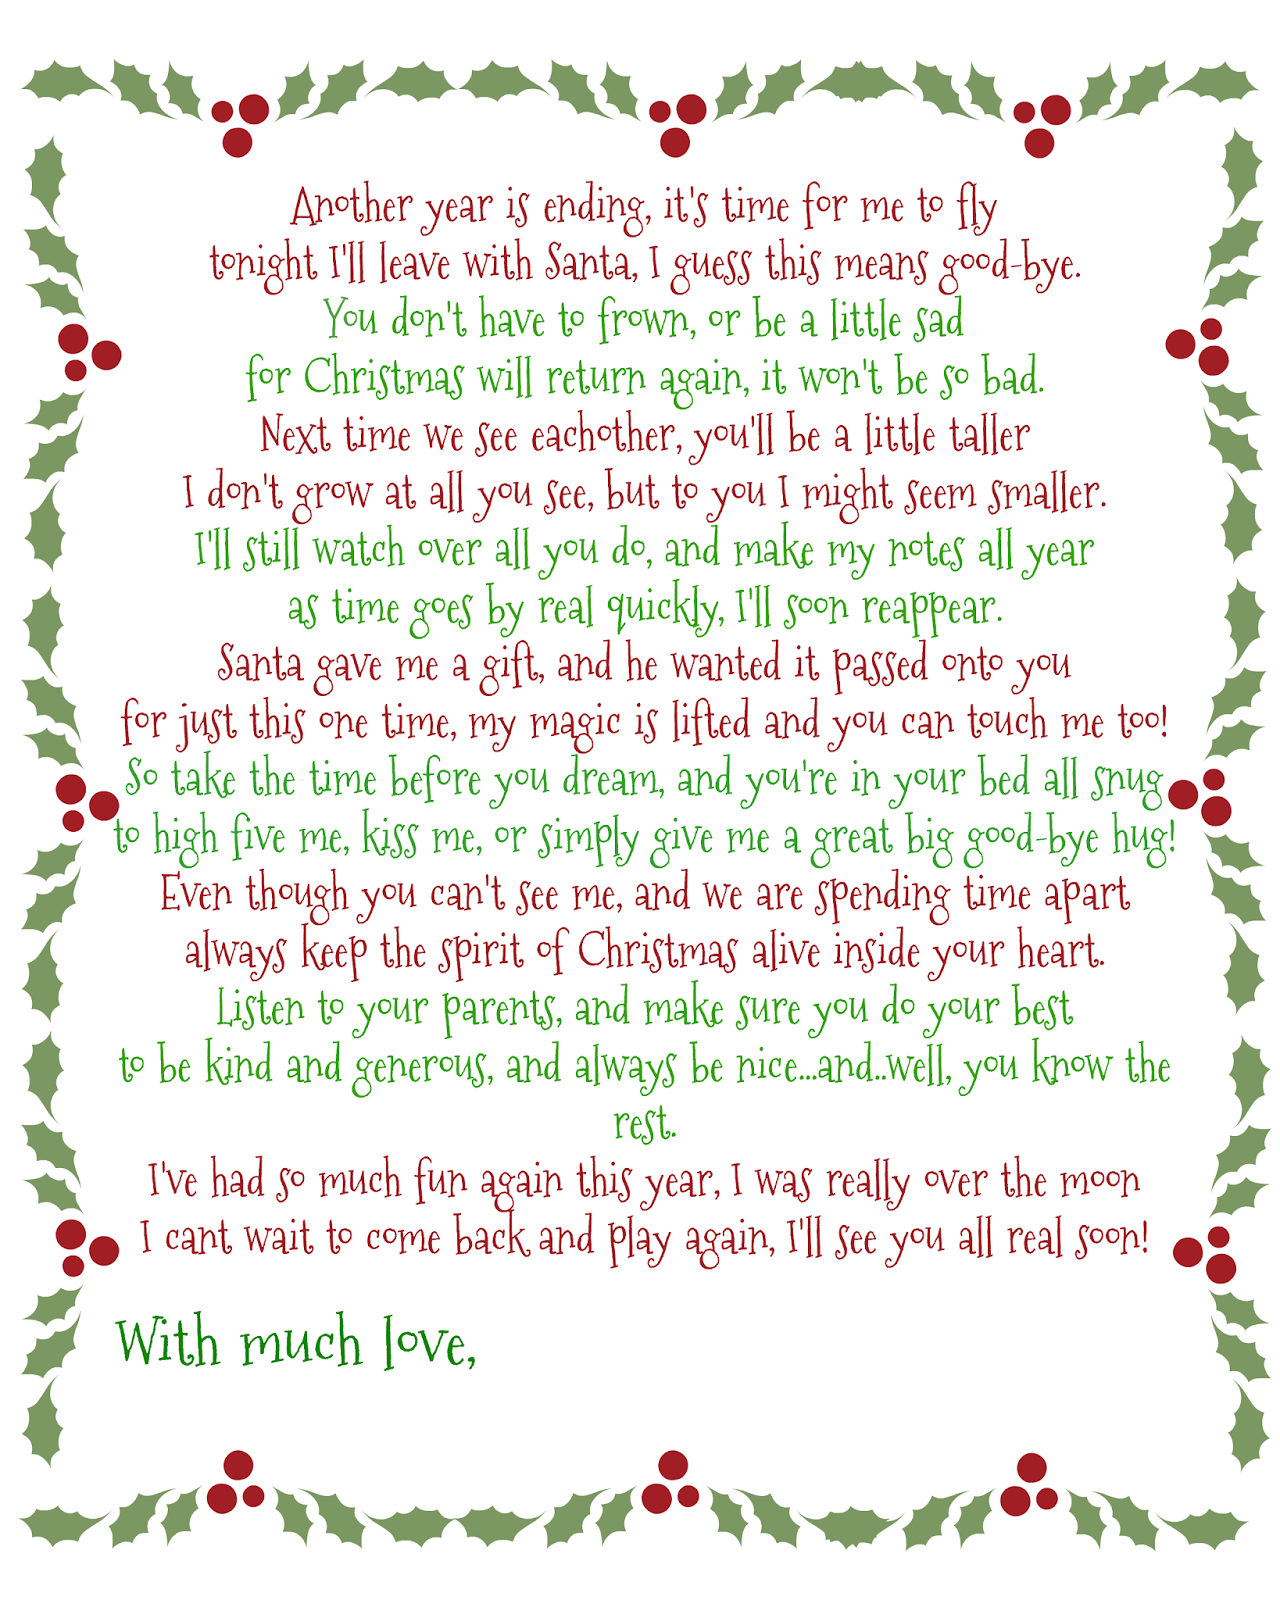 photograph regarding Elf on the Shelf Goodbye Letter Free Printable titled Its A Mothers Environment: Elf upon the Shelf Fantastic-Bye Poem